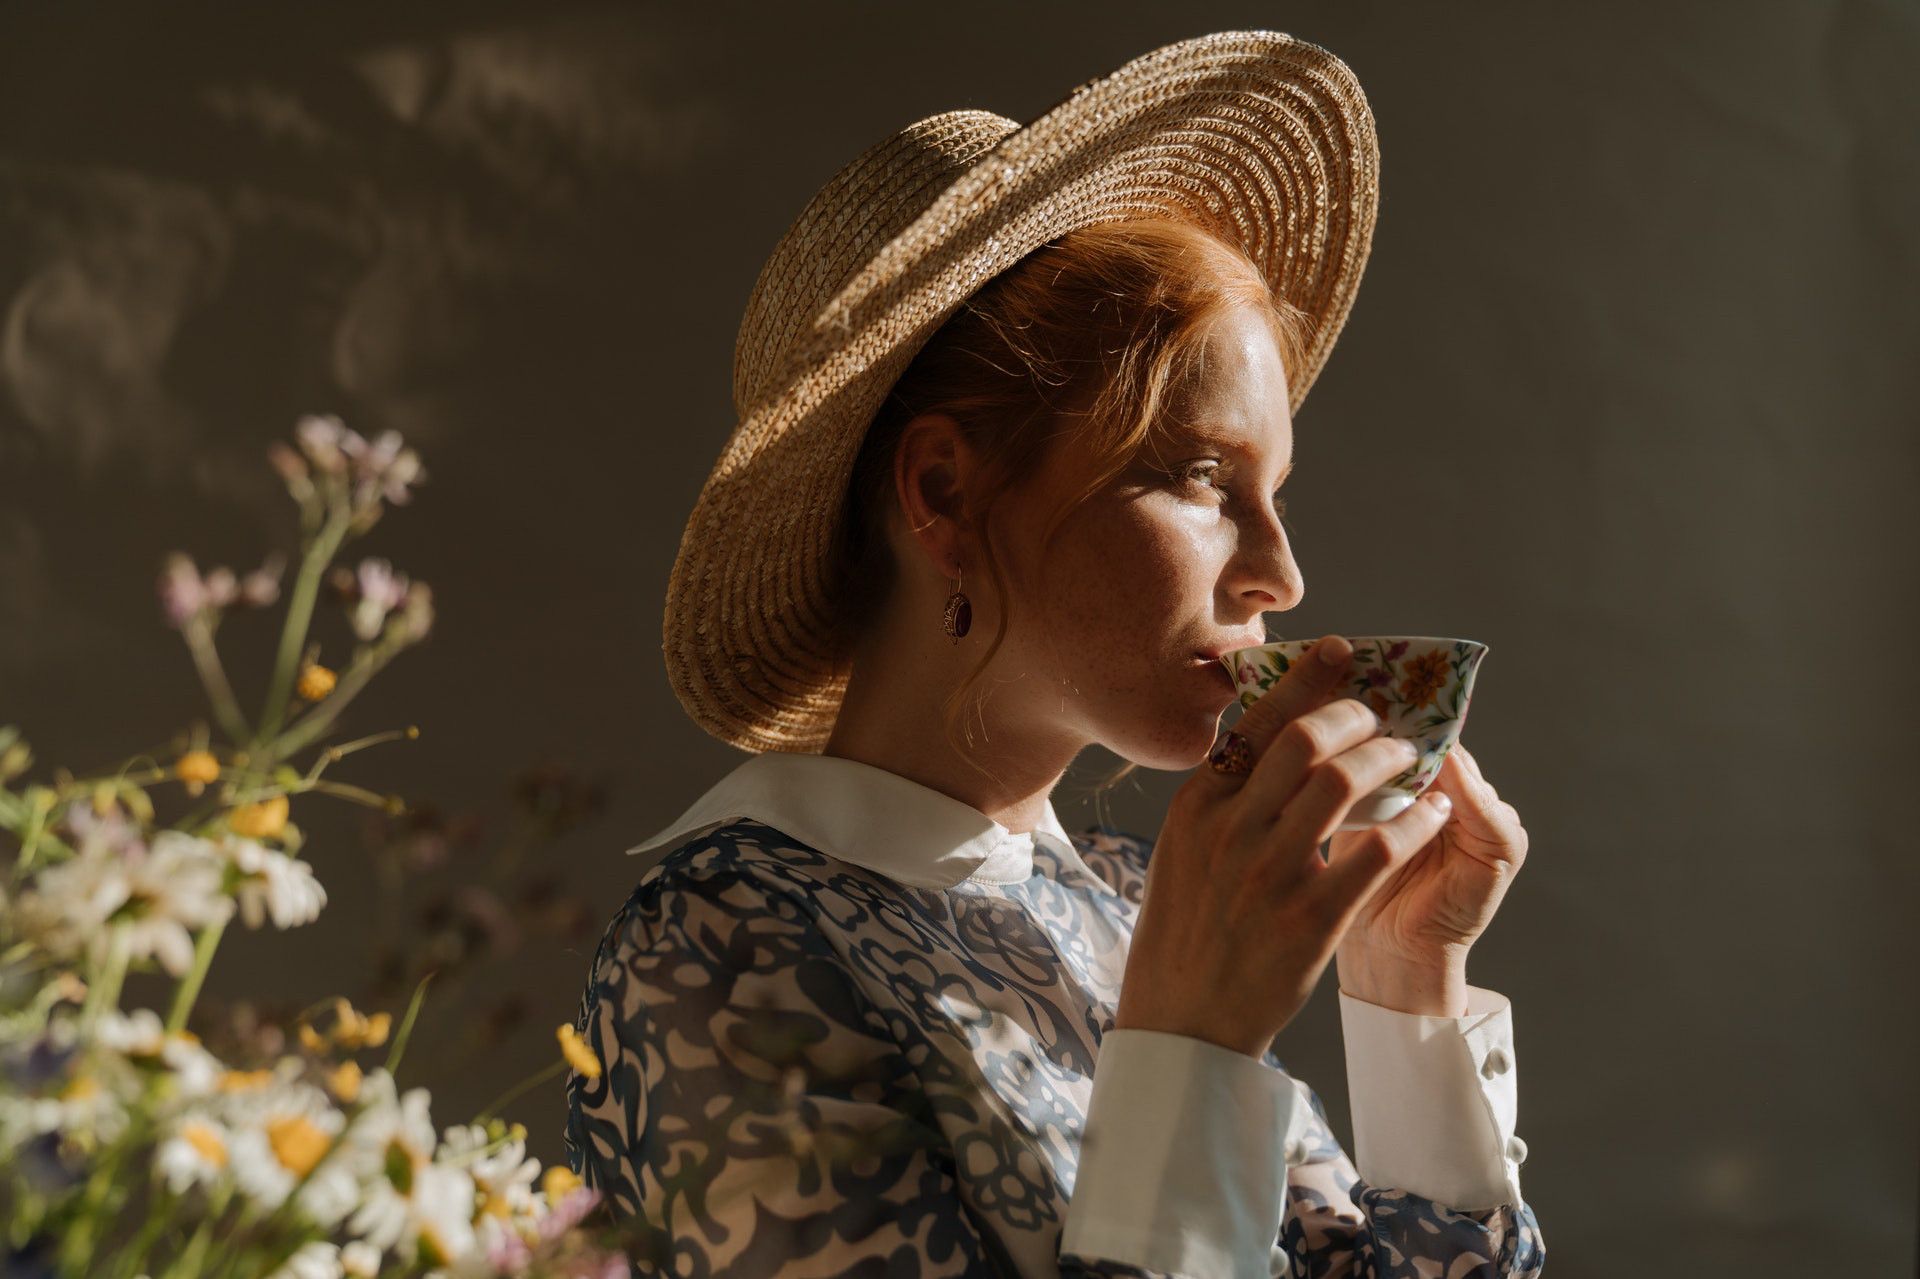 woman drinking tea from teacup